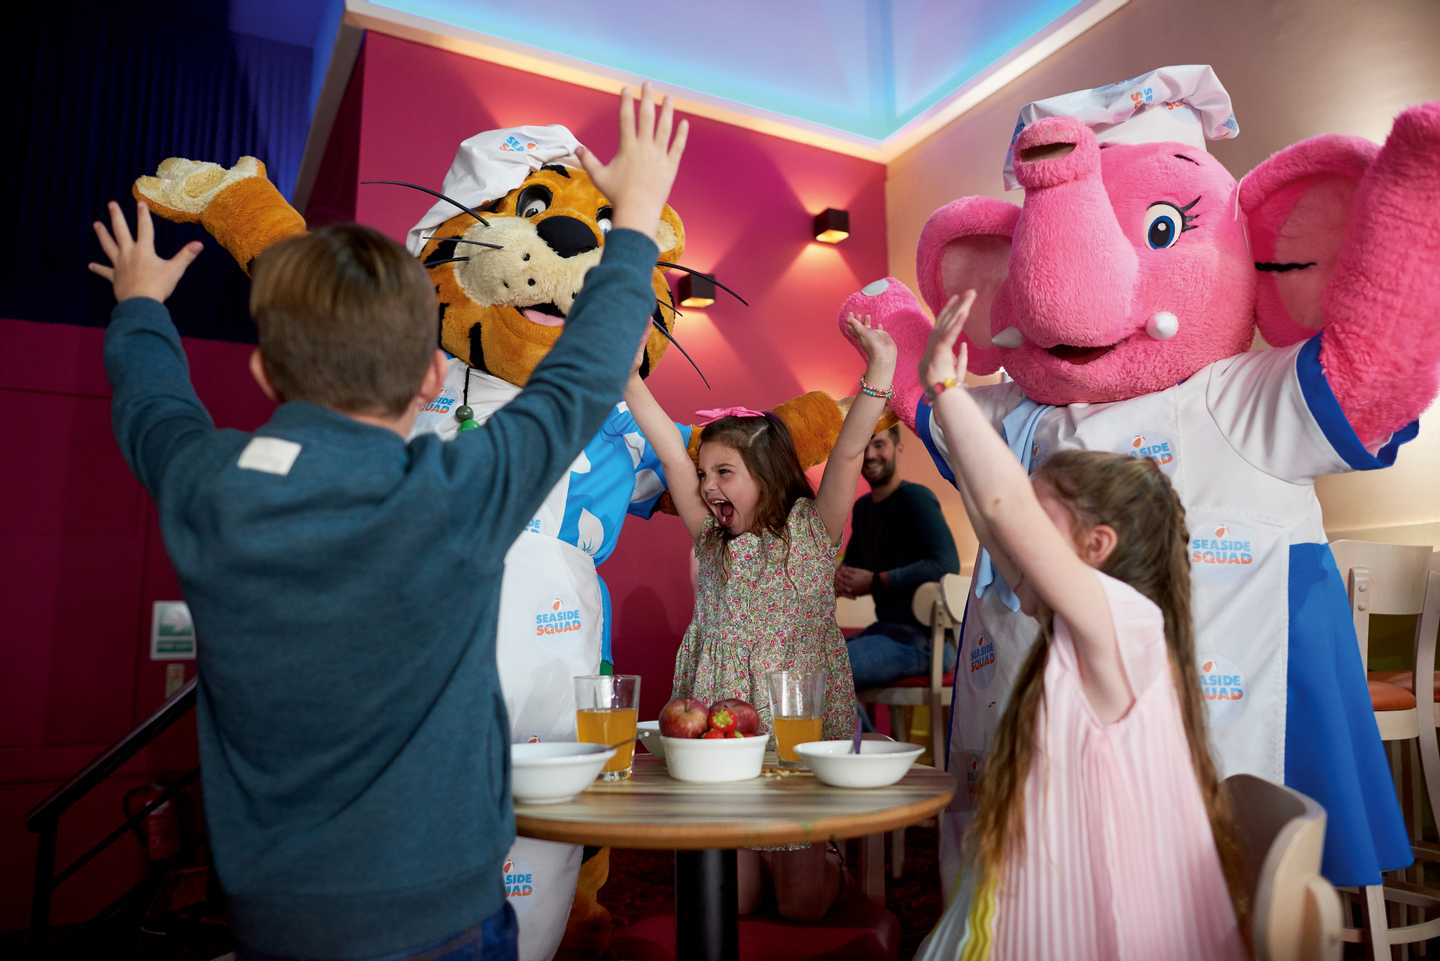 Children enjoying breakfast with the characters